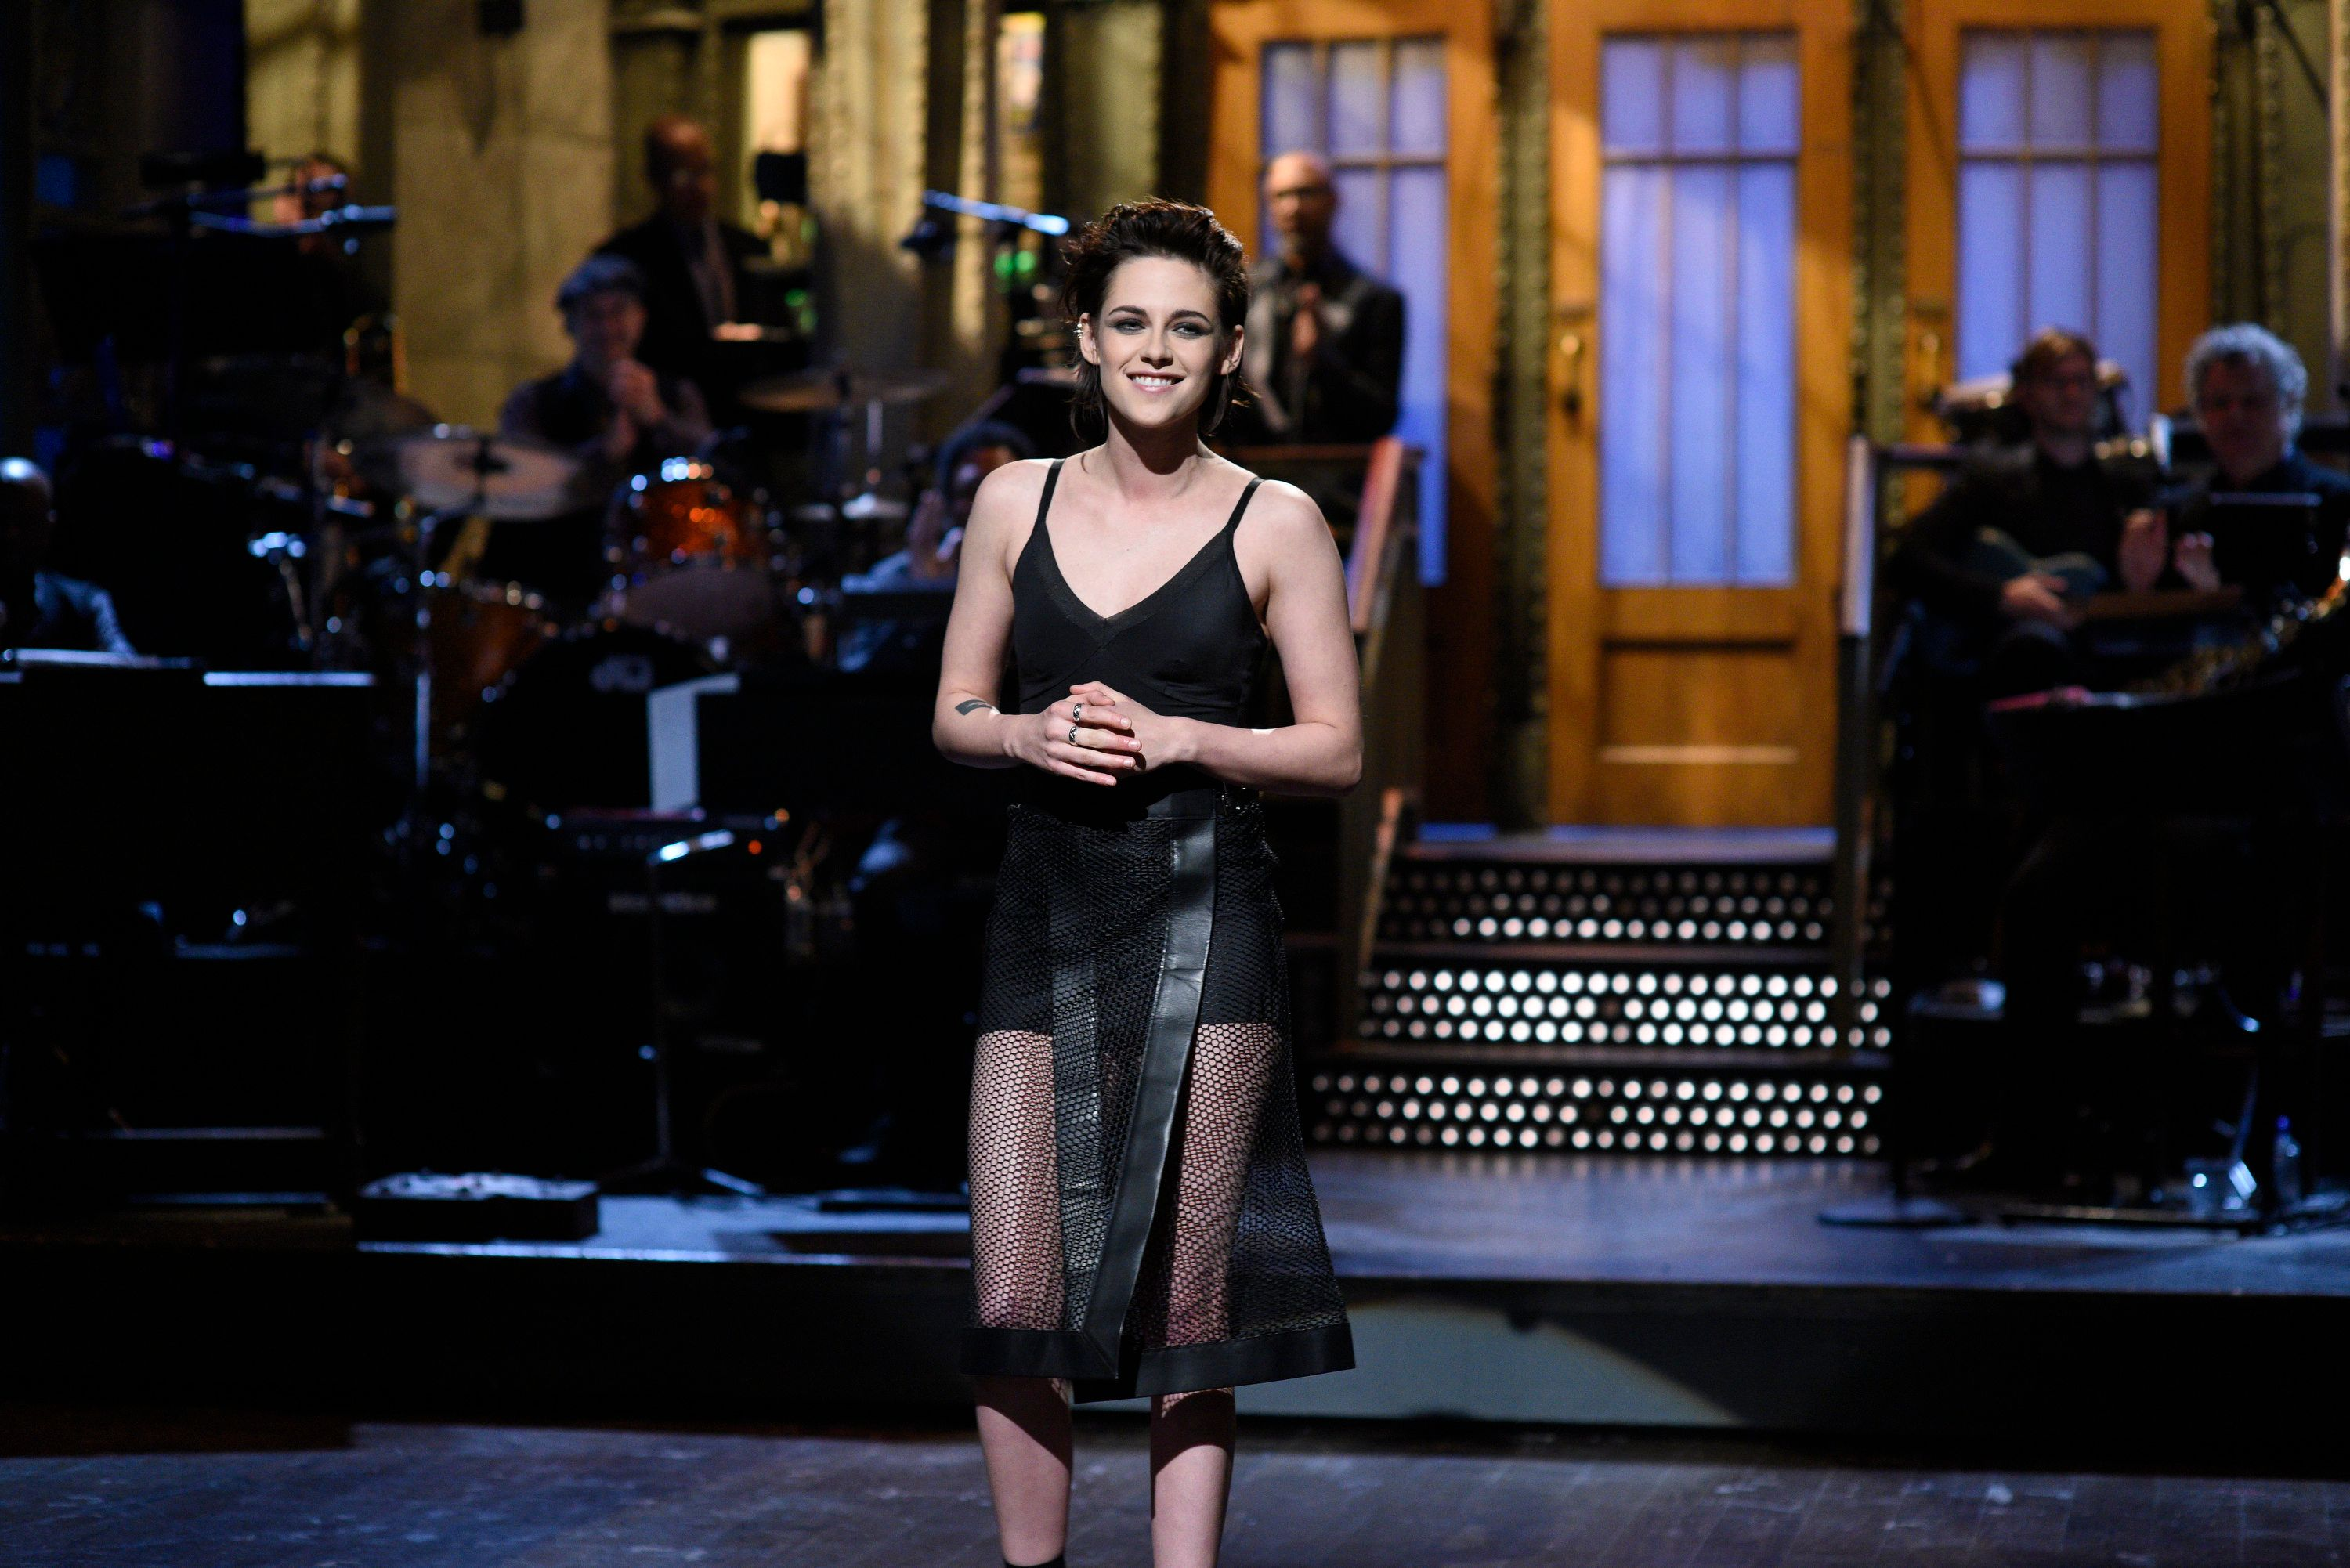 SATURDAY NIGHT LIVE -- 'Kristen Stewart' Episode 1717 -- Pictured: Host Kristen Stewart during the Monologue on February 4th, 2017 -- (Photo by: Will Heath/NBC/NBCU Photo Bank via Getty Images)